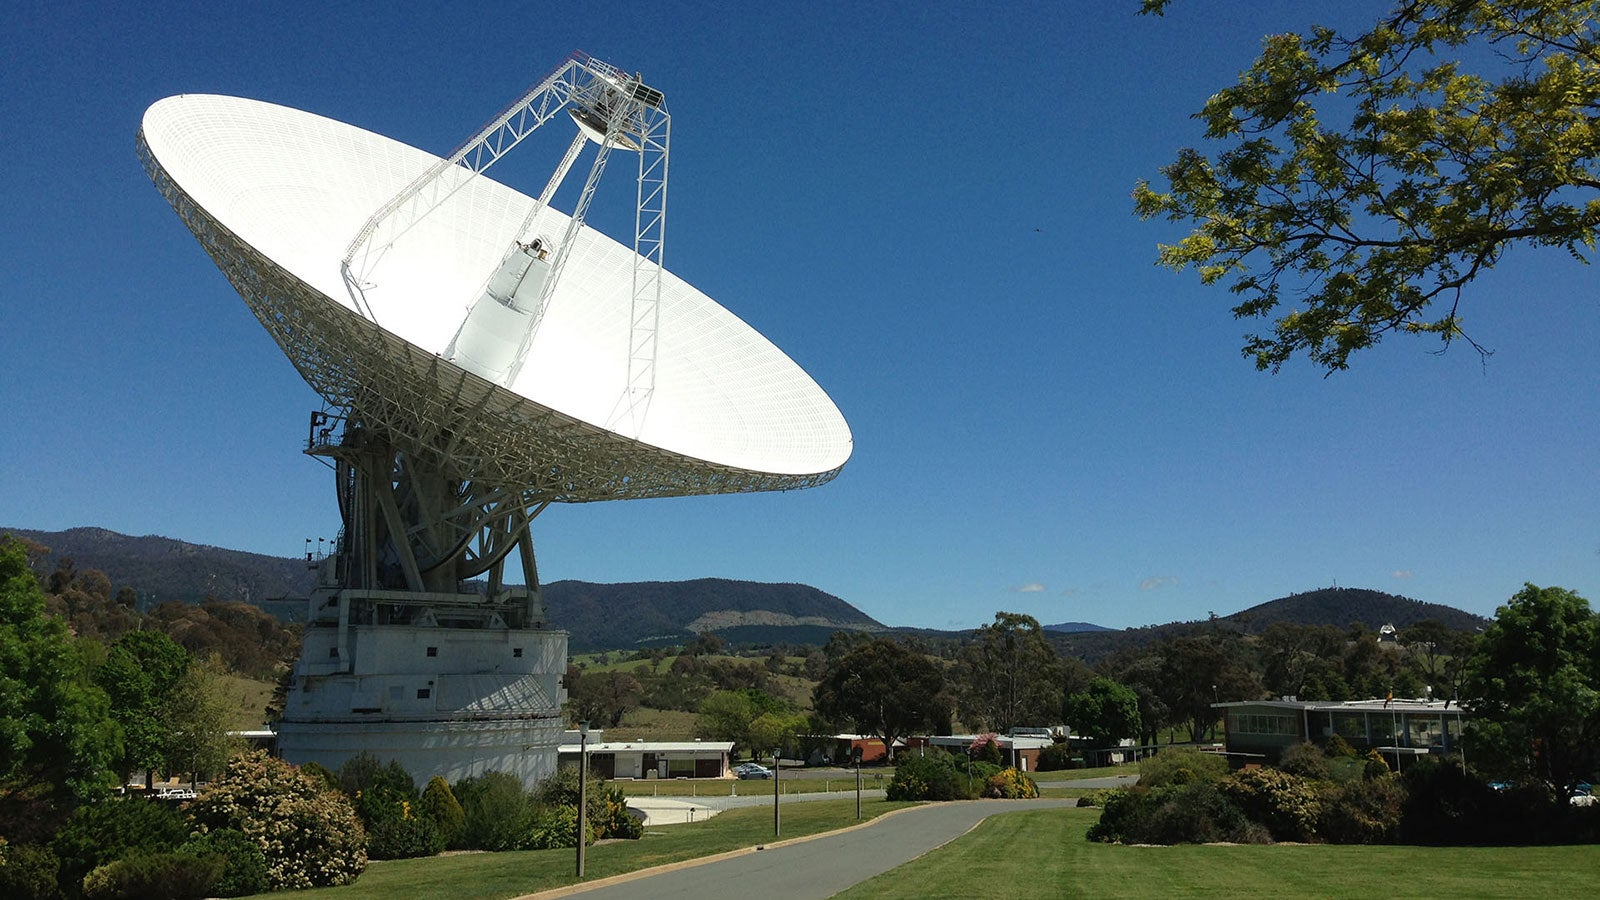 NASA Can't Contact Voyager 2 Until 2021, As Deep Space Antenna Gets Much-Needed Upgrades